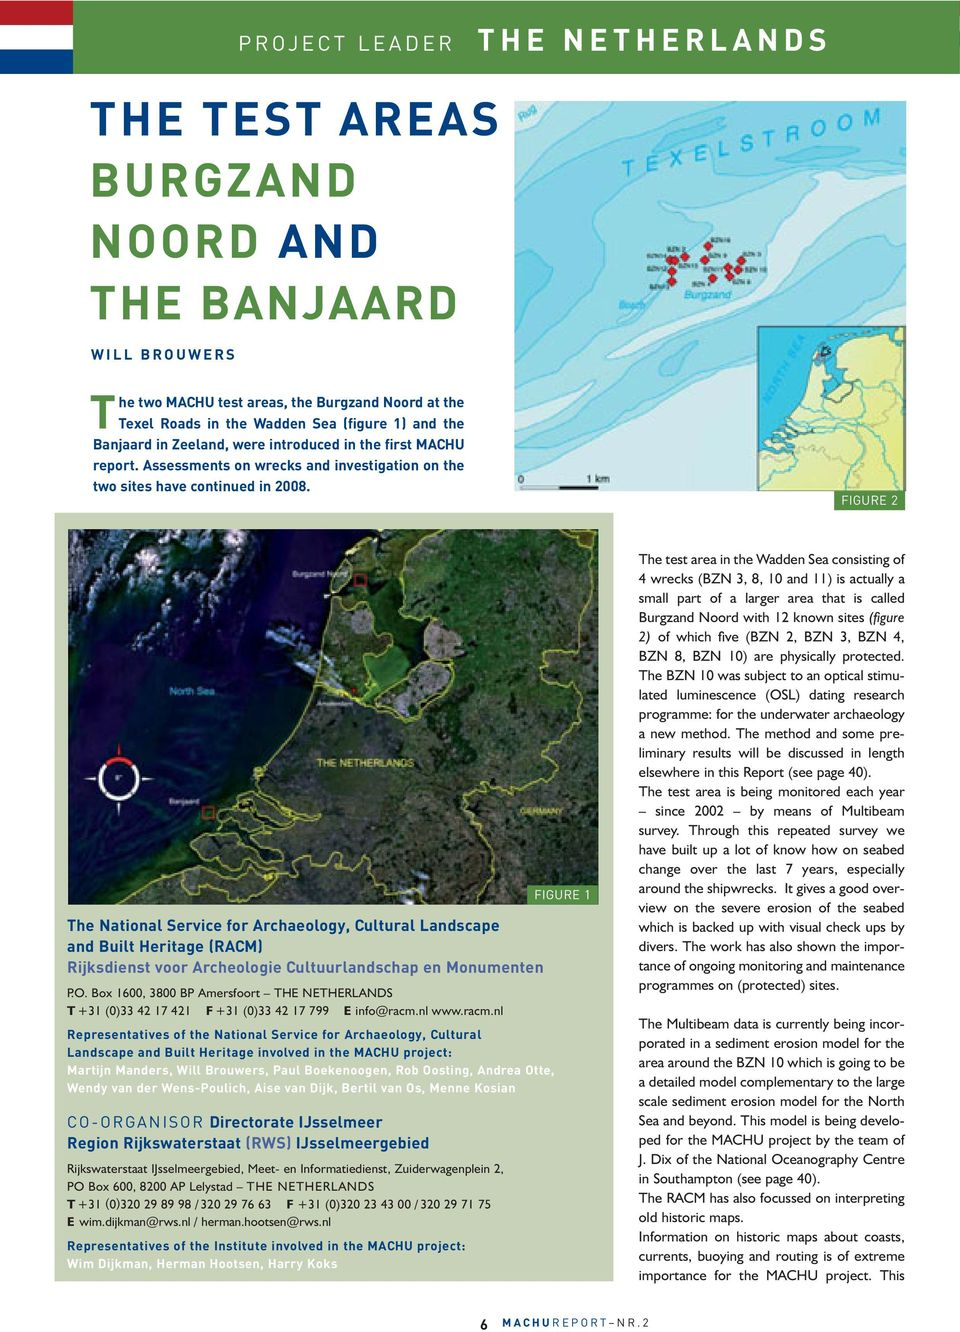 FIGURE 2 The National Service for Archaeology, Cultural Landscape and Built Heritage (RACM) Rijksdienst voor Archeologie Cultuurlandschap en Monumenten P.O.